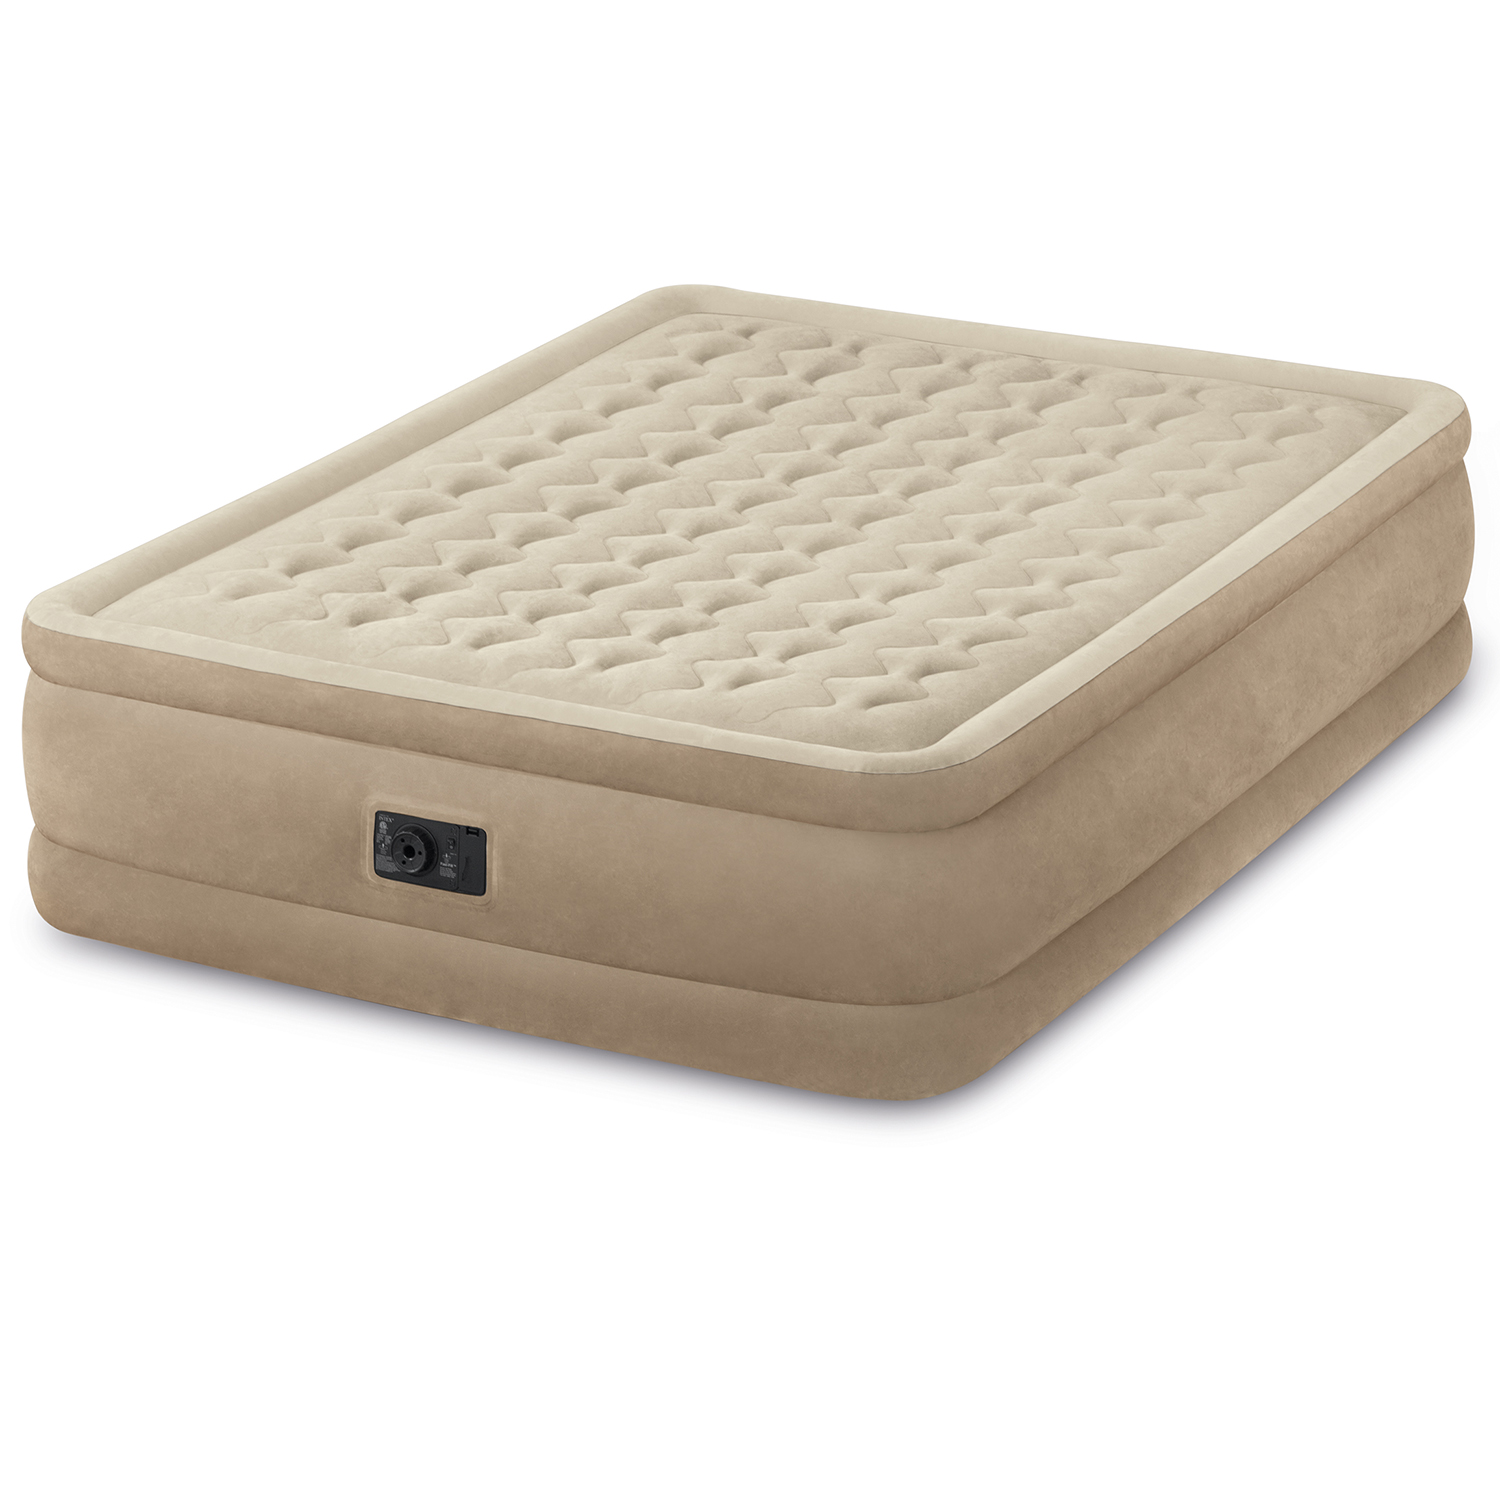 INTEX QUEEN ULTRA PLUSH Air Mattress W BIP - Walmart.com